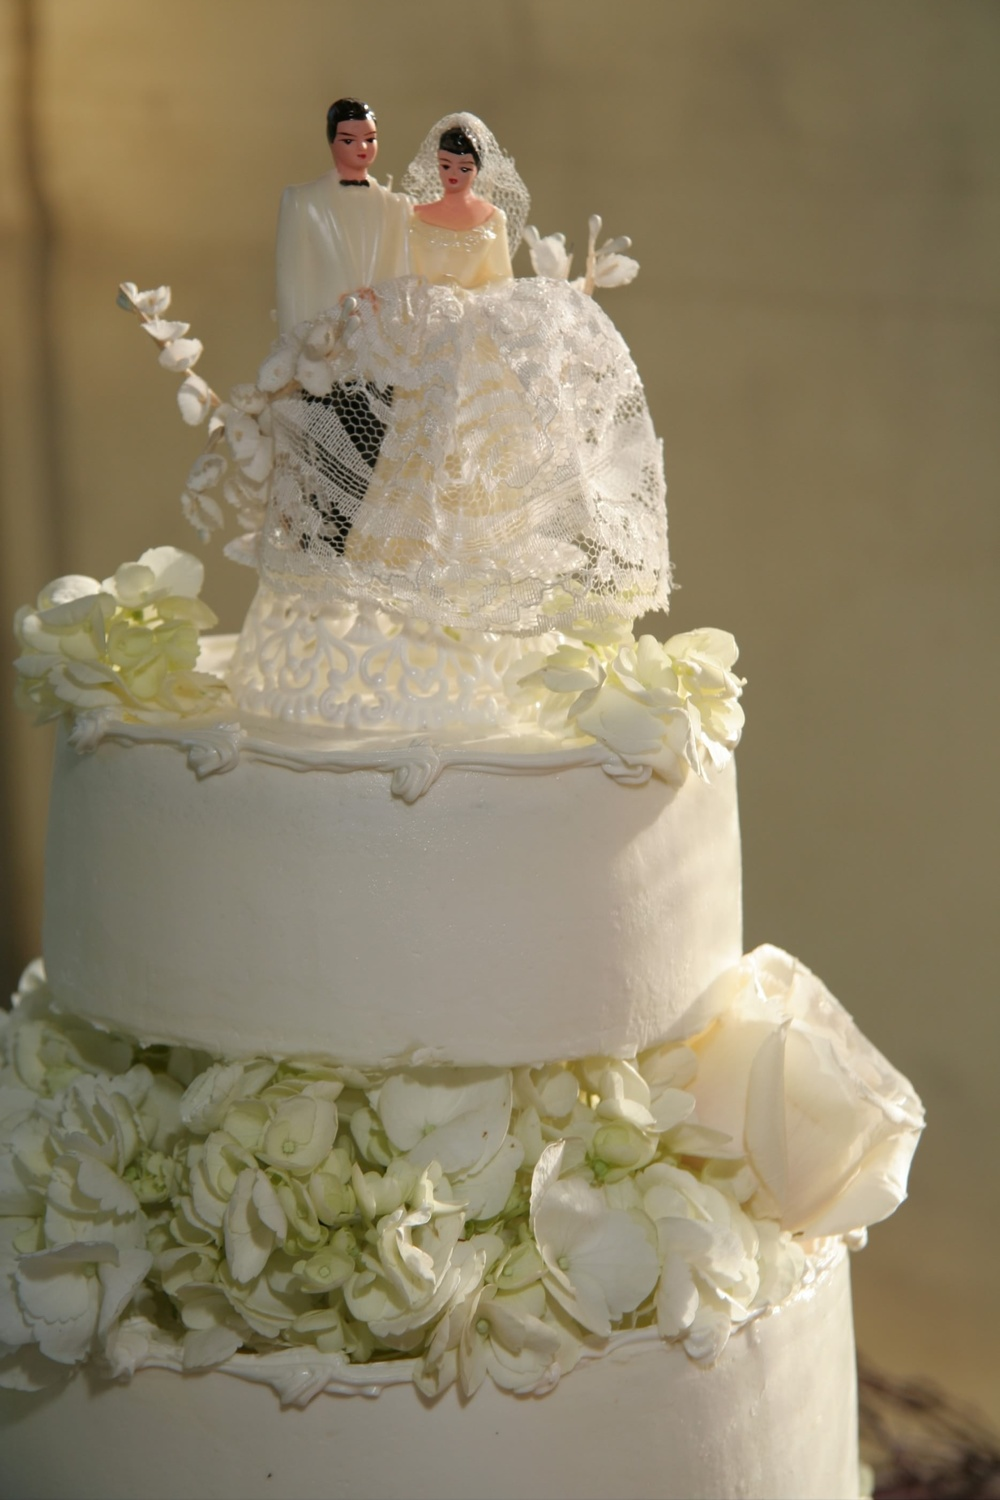 Vashon Island Baking Company wedding cake